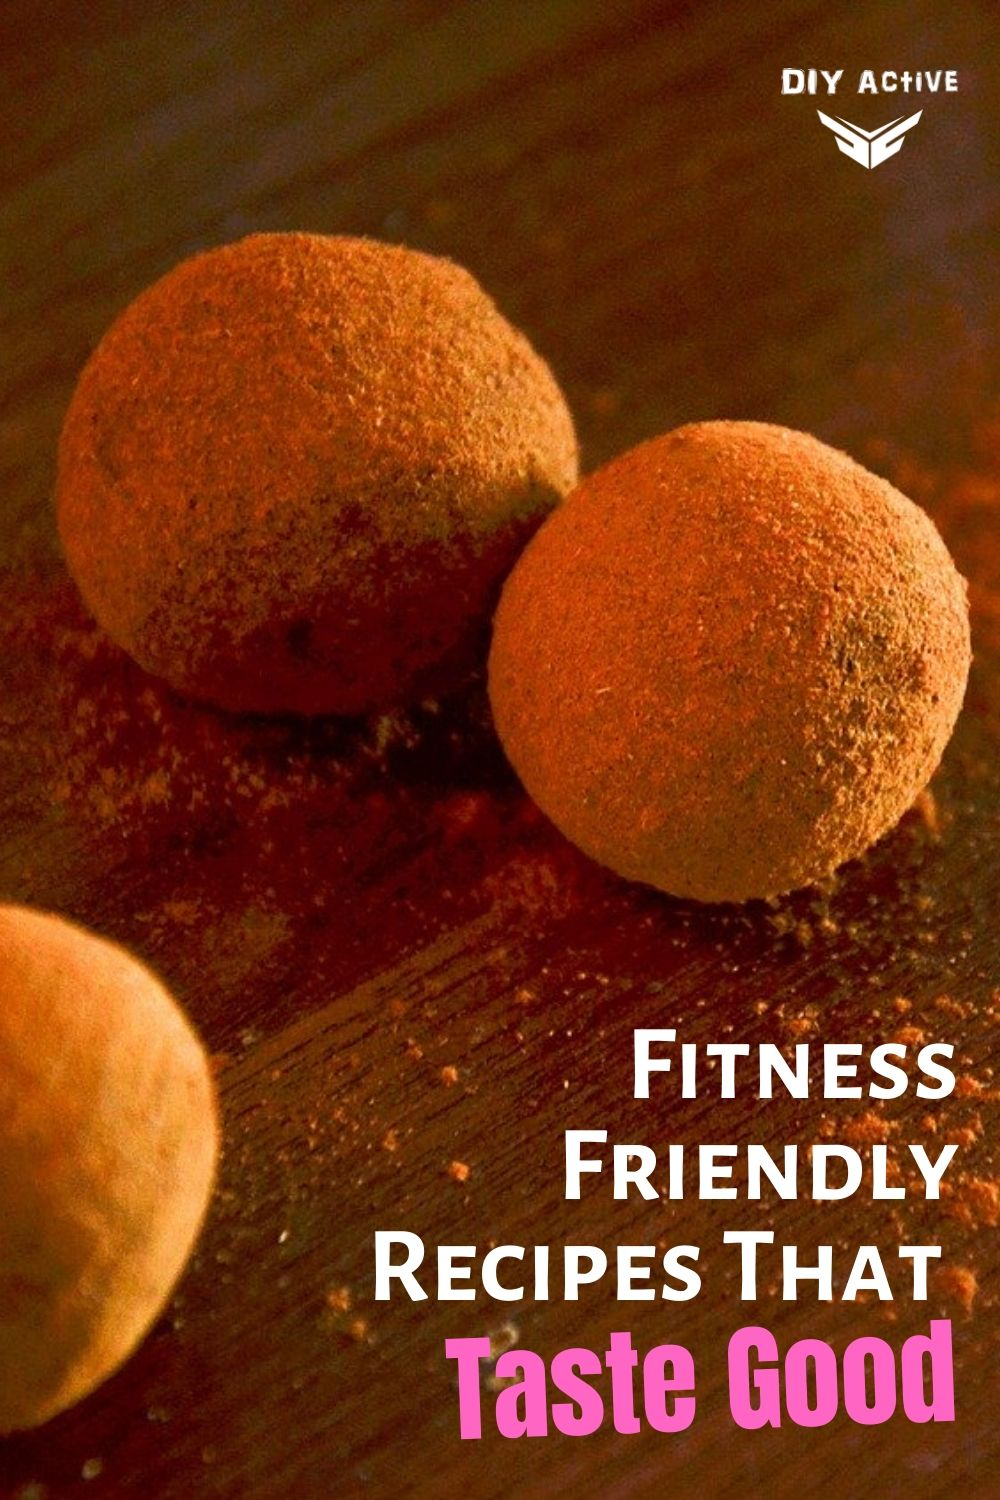 Try These Fitness Friendly Recipes That Taste Good